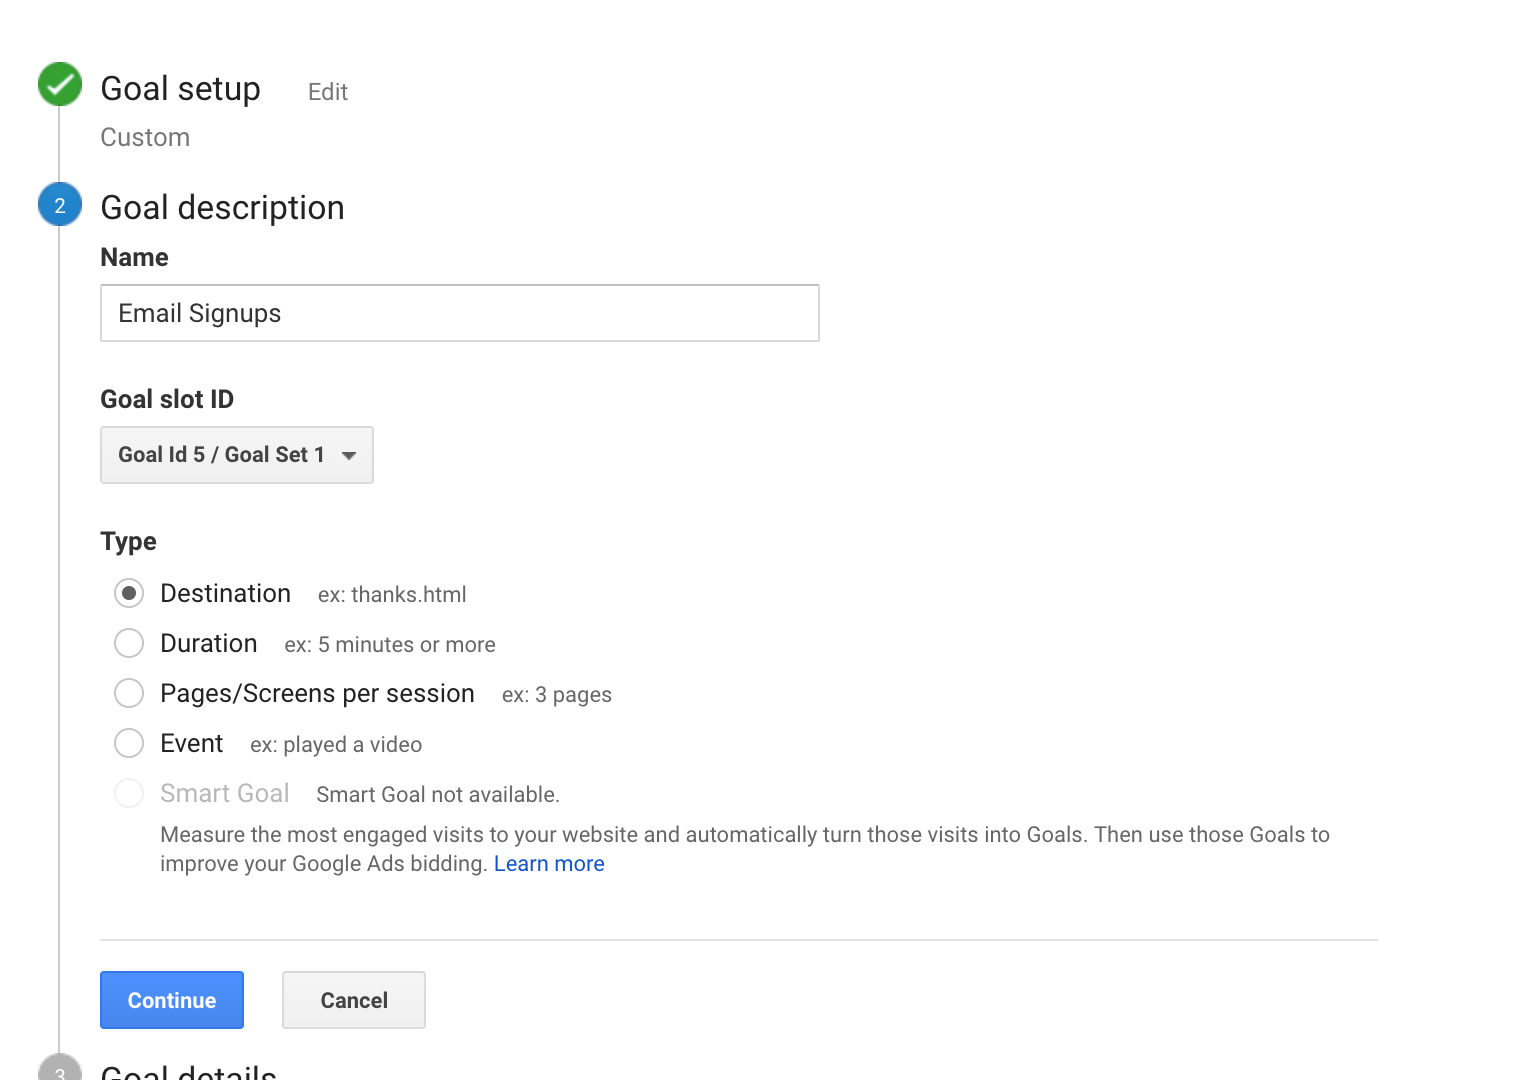 create goal in google analytics for email signups